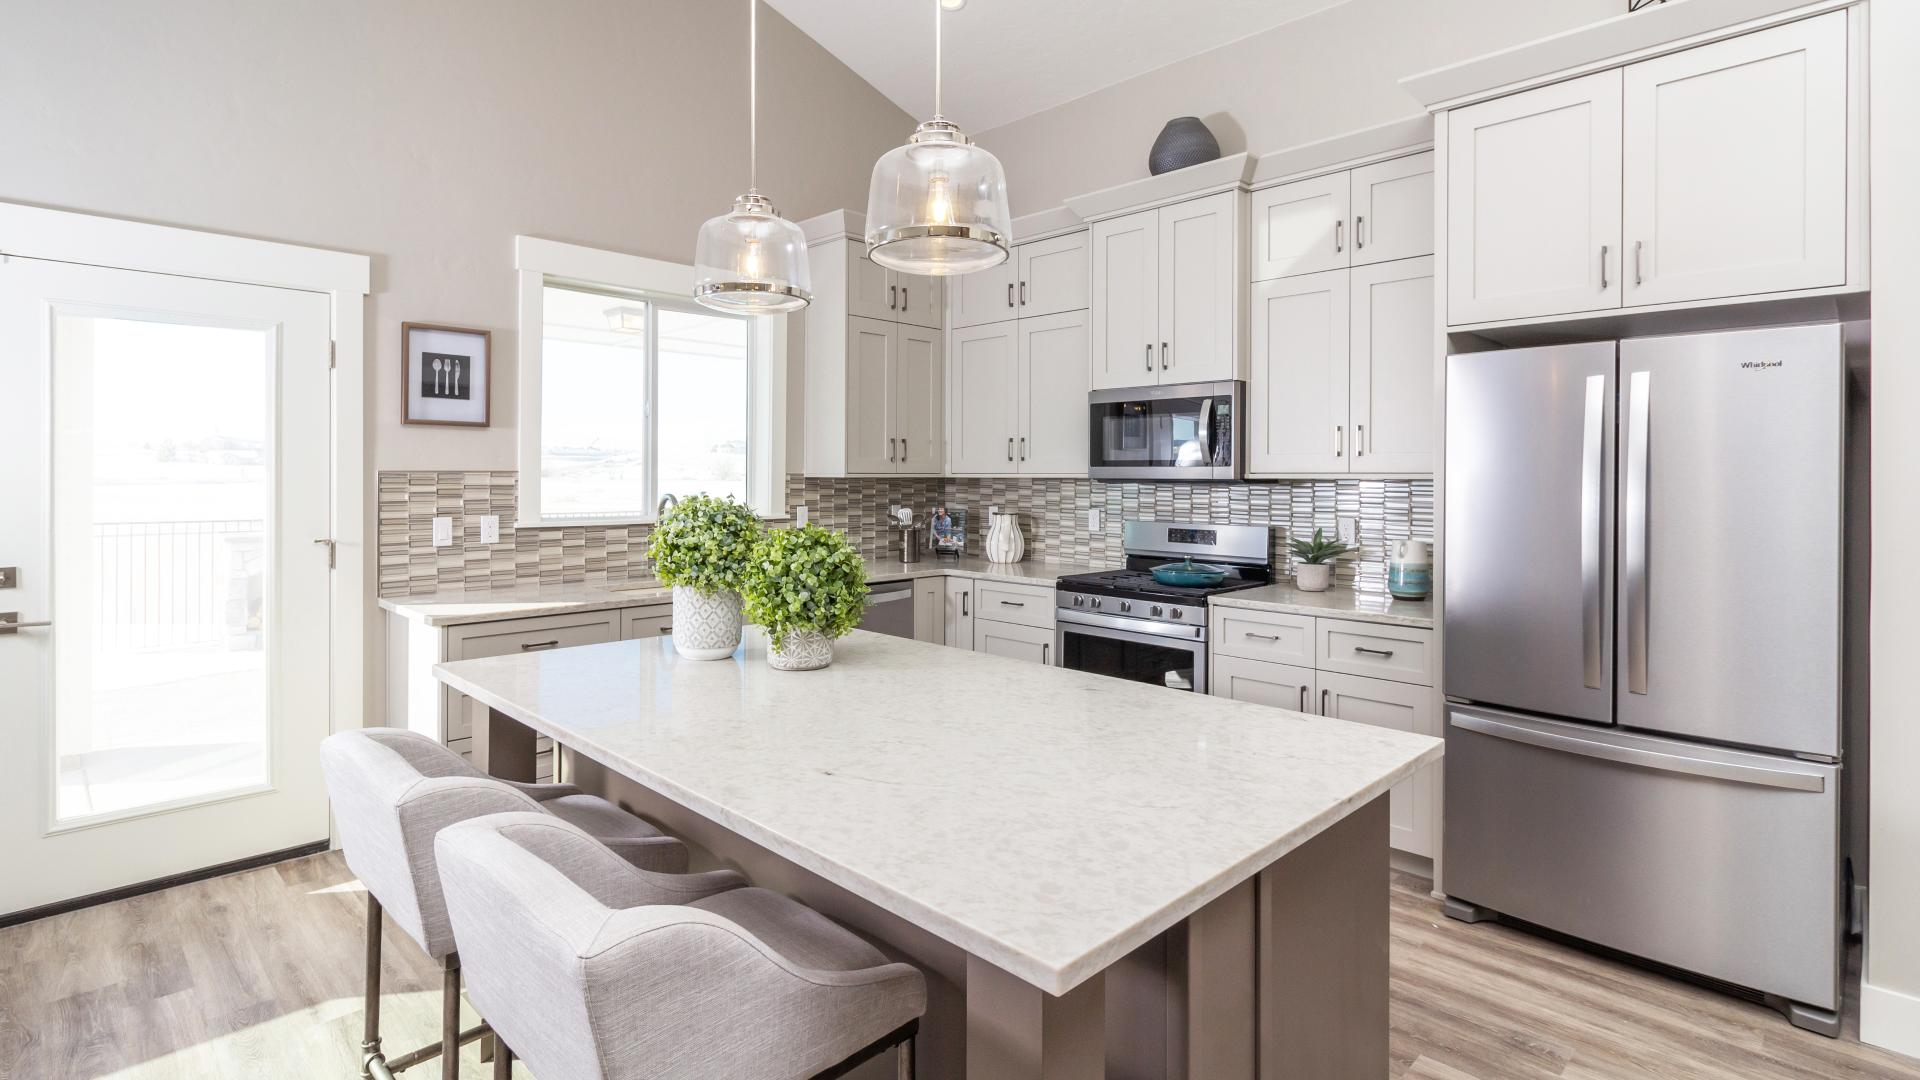 Open and welcoming kitchen